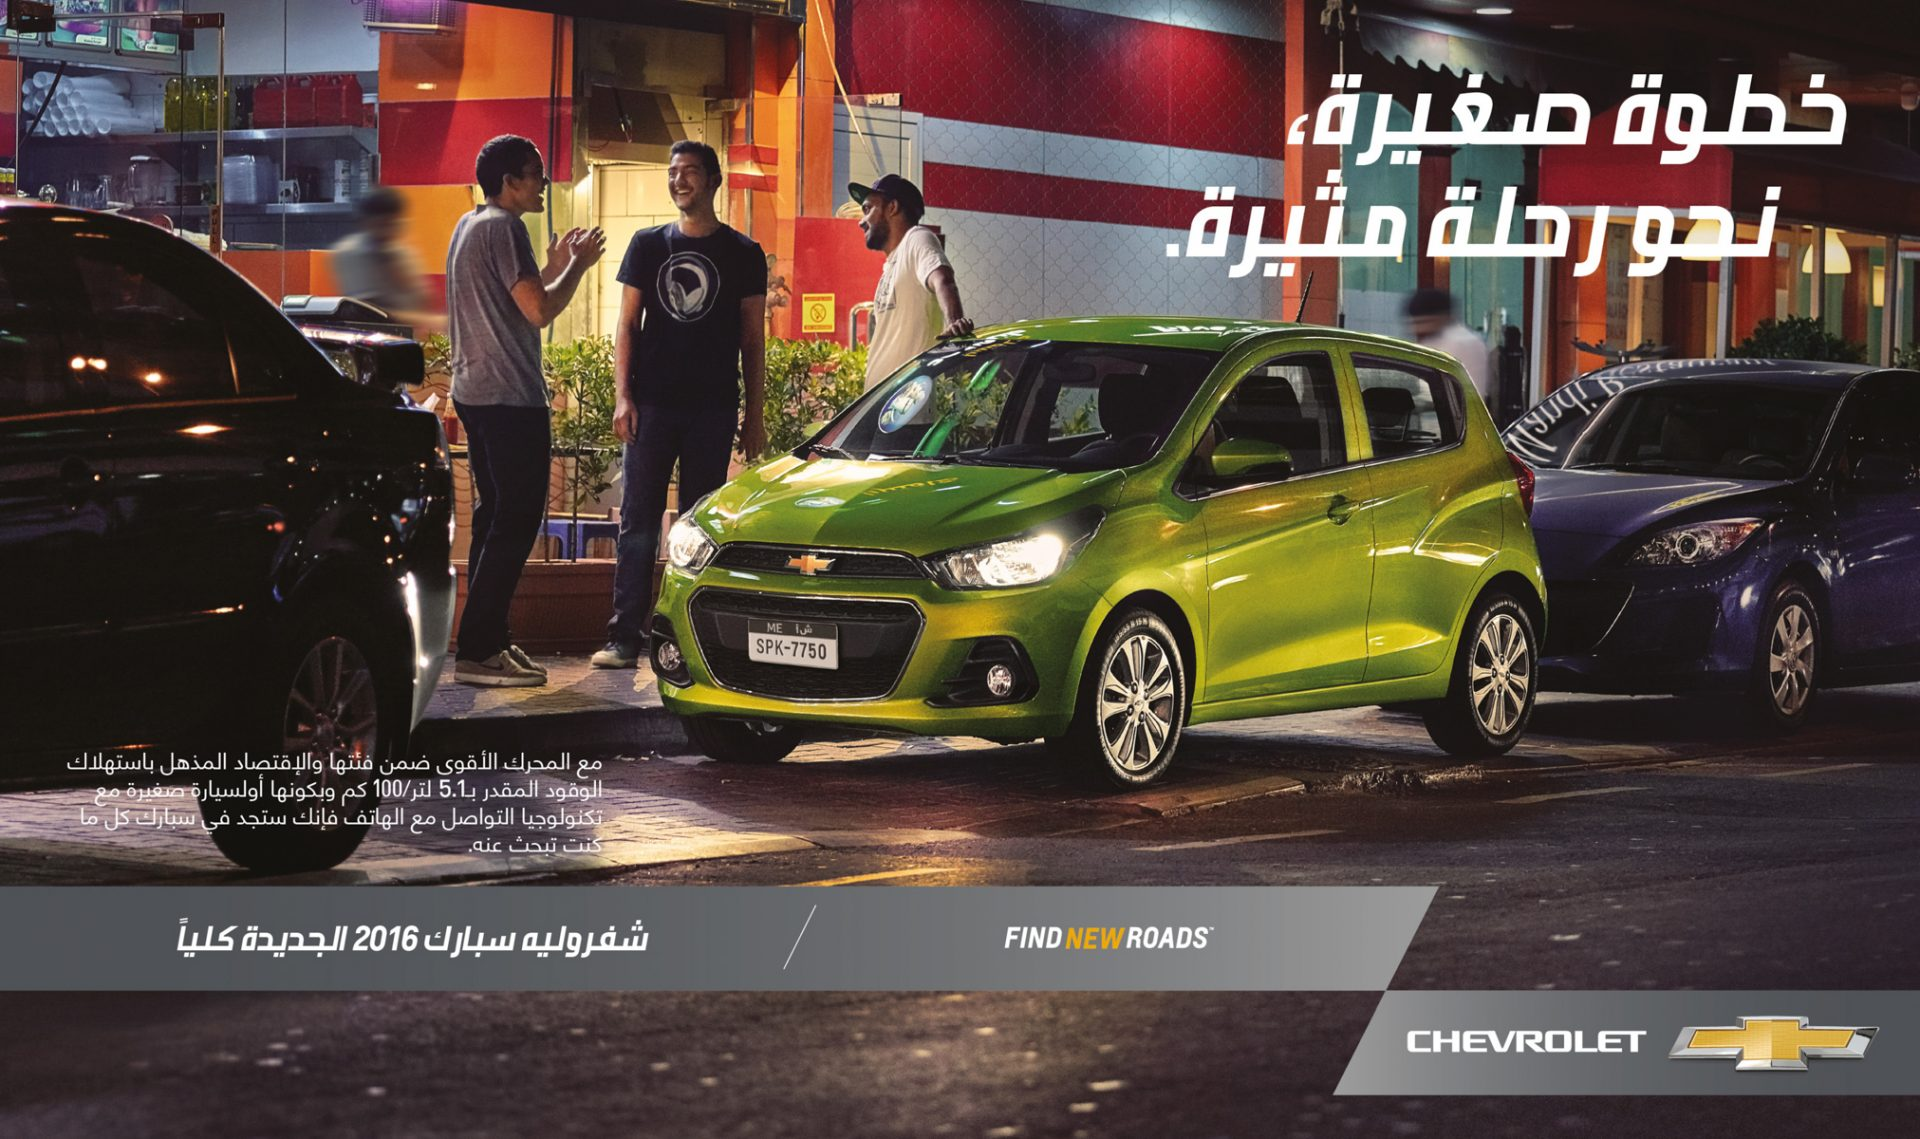 Chevrolet | All it takes is a spark